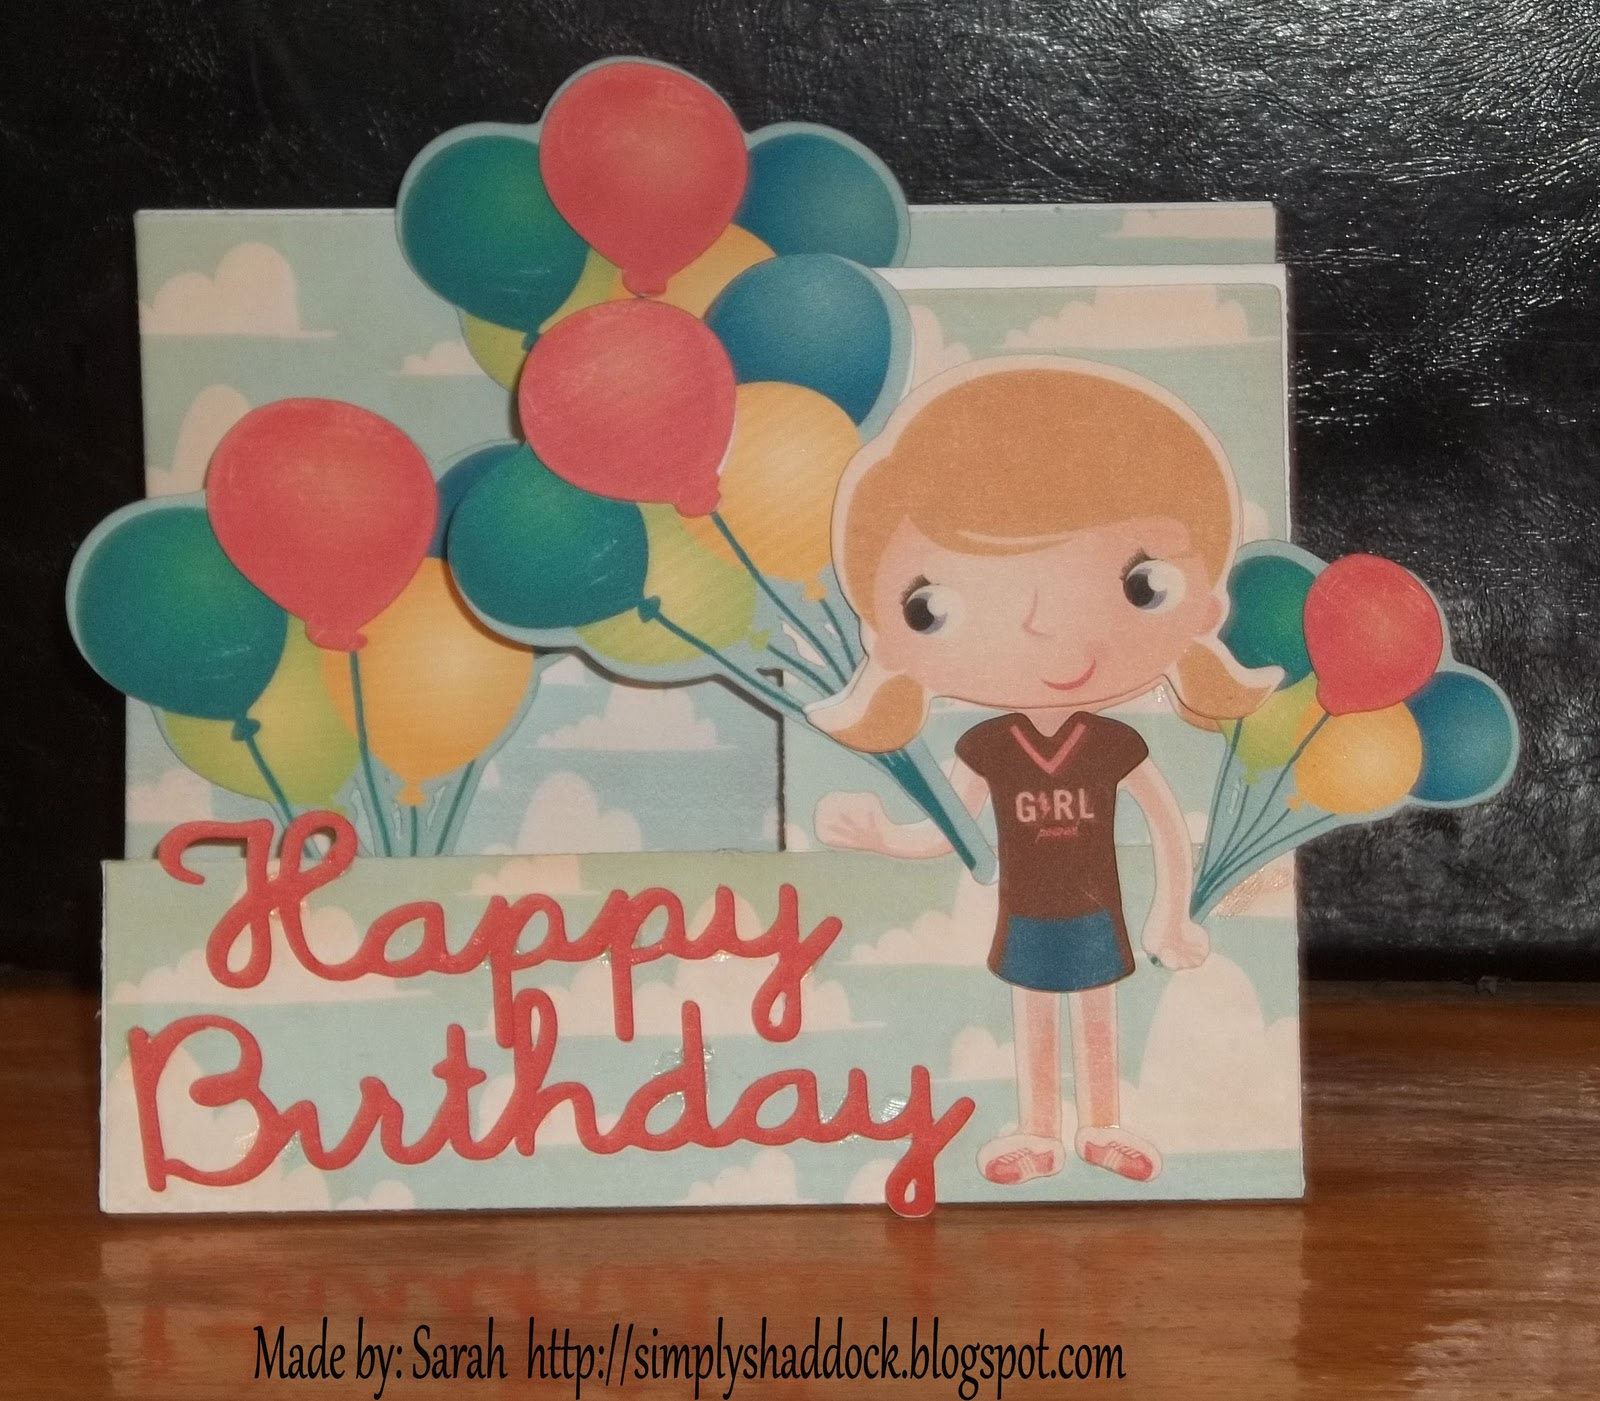 Simply By Sarah Imagine Side Step Birthday Card